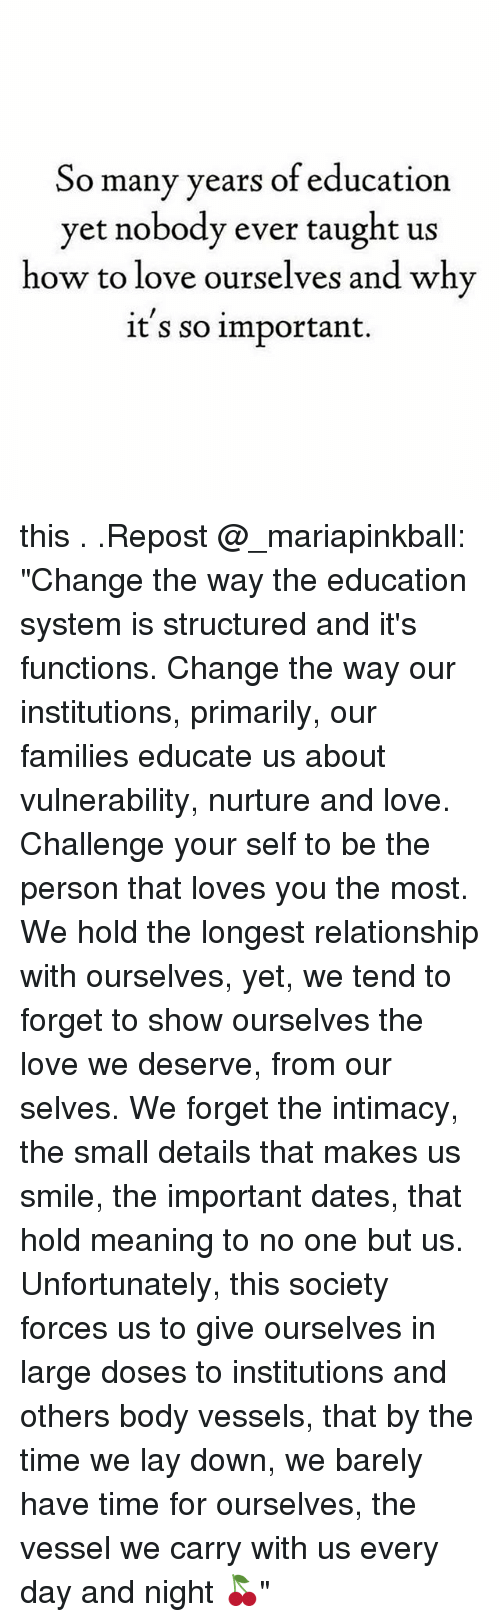 """Love, Memes, and How To: So many years of education  yet nobody ever taught us  how to love ourselves and why  it s so important. this . .Repost @_mariapinkball: """"Change the way the education system is structured and it's functions. Change the way our institutions, primarily, our families educate us about vulnerability, nurture and love. Challenge your self to be the person that loves you the most. We hold the longest relationship with ourselves, yet, we tend to forget to show ourselves the love we deserve, from our selves. We forget the intimacy, the small details that makes us smile, the important dates, that hold meaning to no one but us. Unfortunately, this society forces us to give ourselves in large doses to institutions and others body vessels, that by the time we lay down, we barely have time for ourselves, the vessel we carry with us every day and night 🍒"""""""